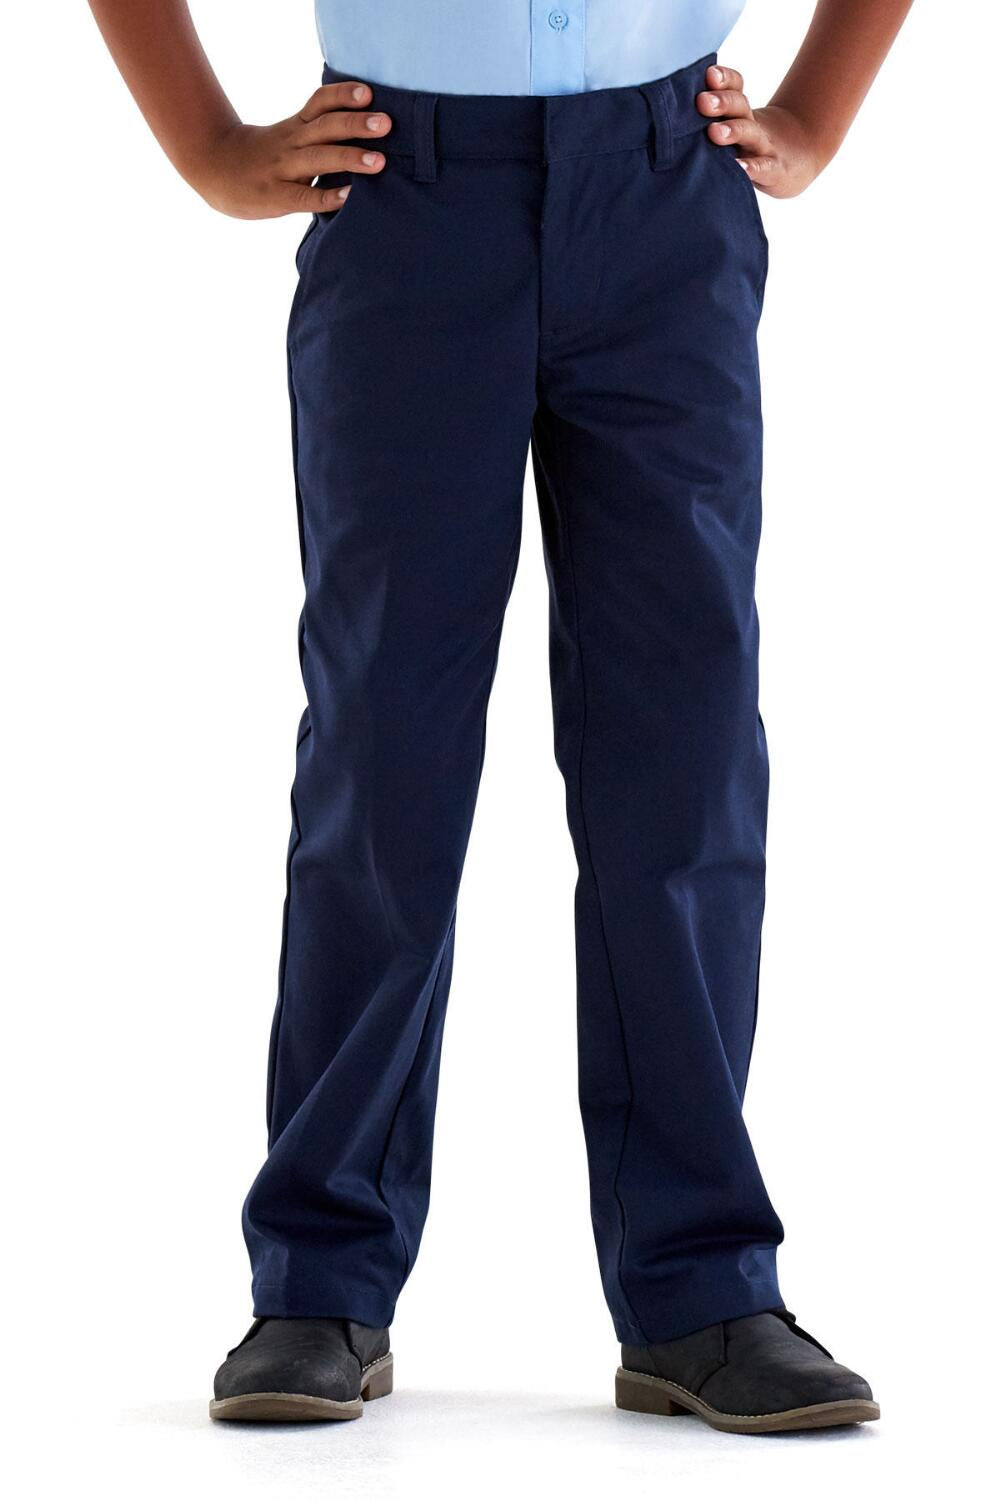 BOYS NAVY DOUBLE KNEE PANT